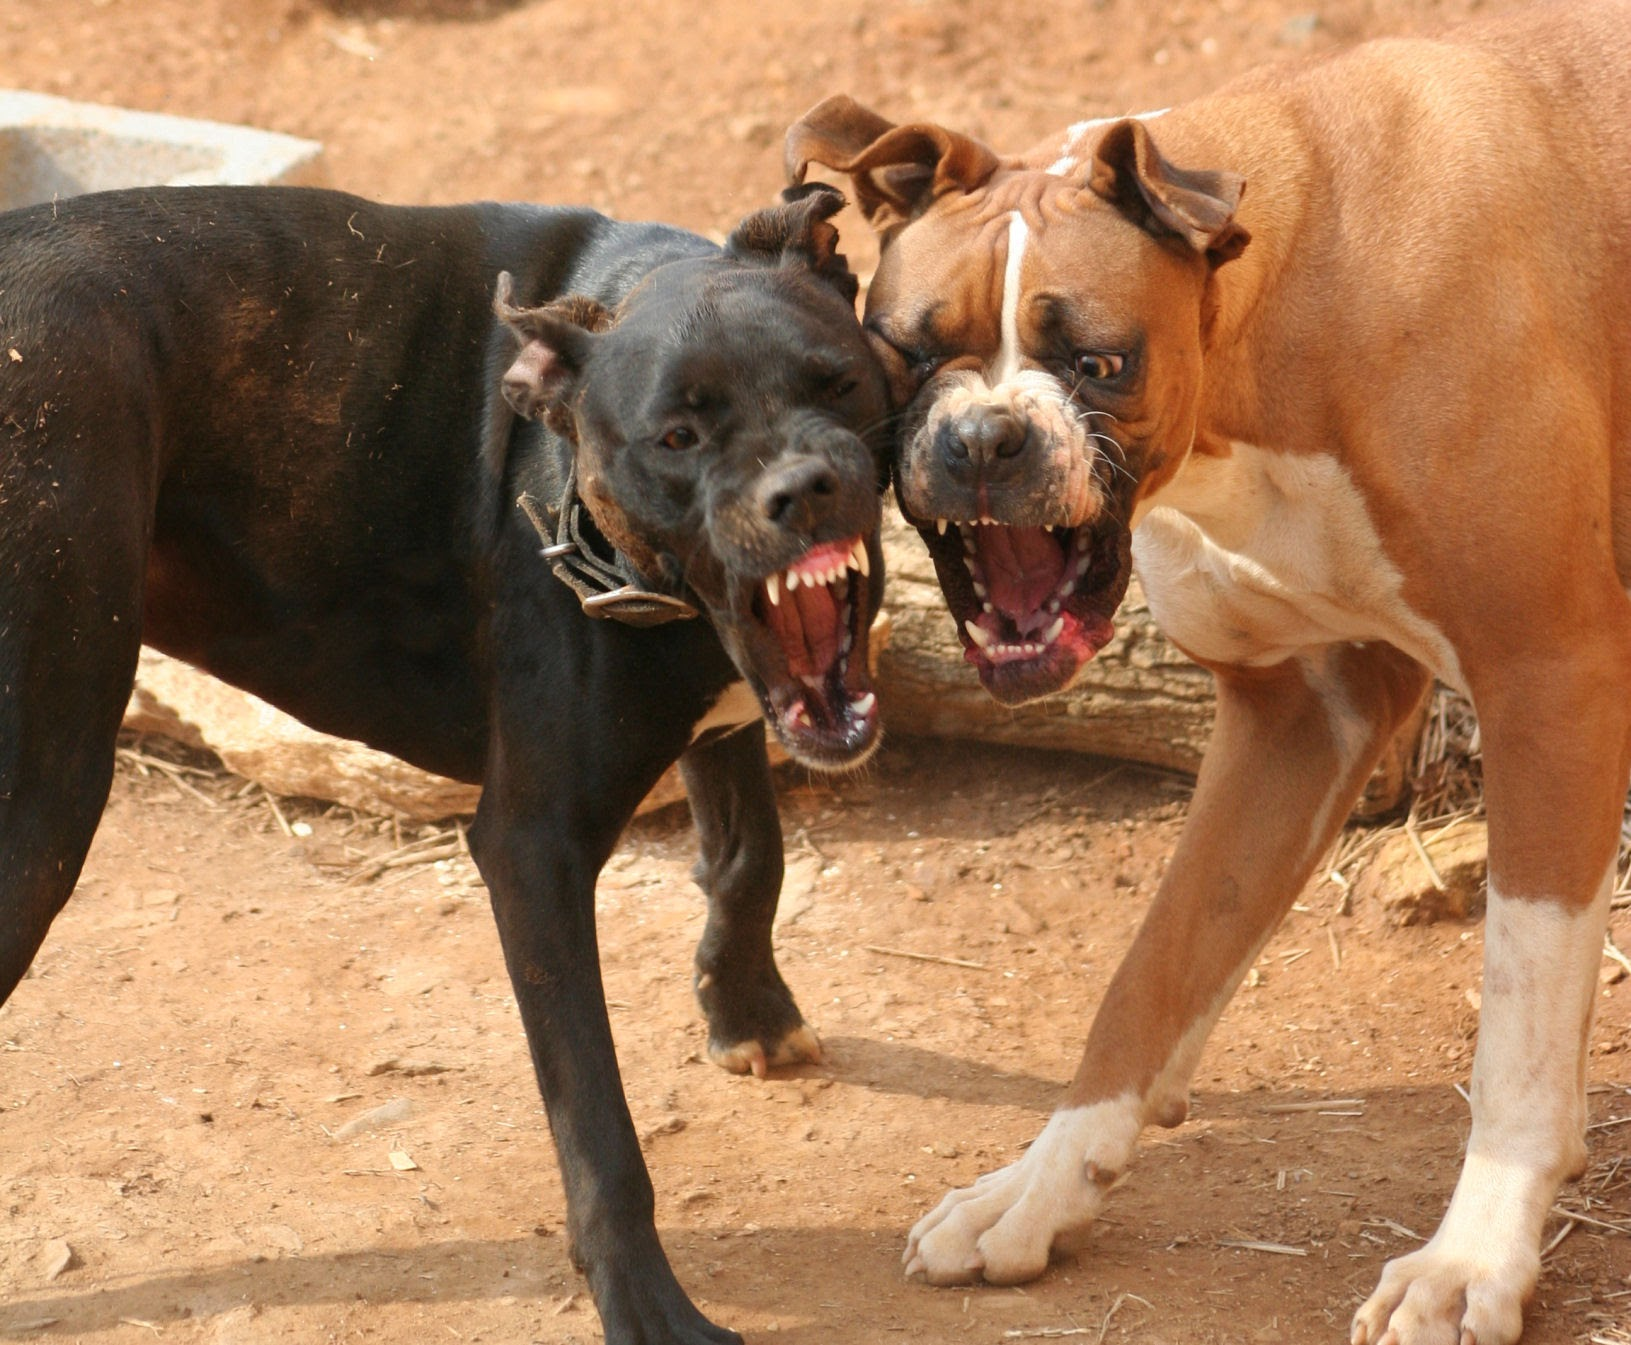 dallas tx personal injury lawyers - Who Pays for Dog Bite Injuries in Texas?